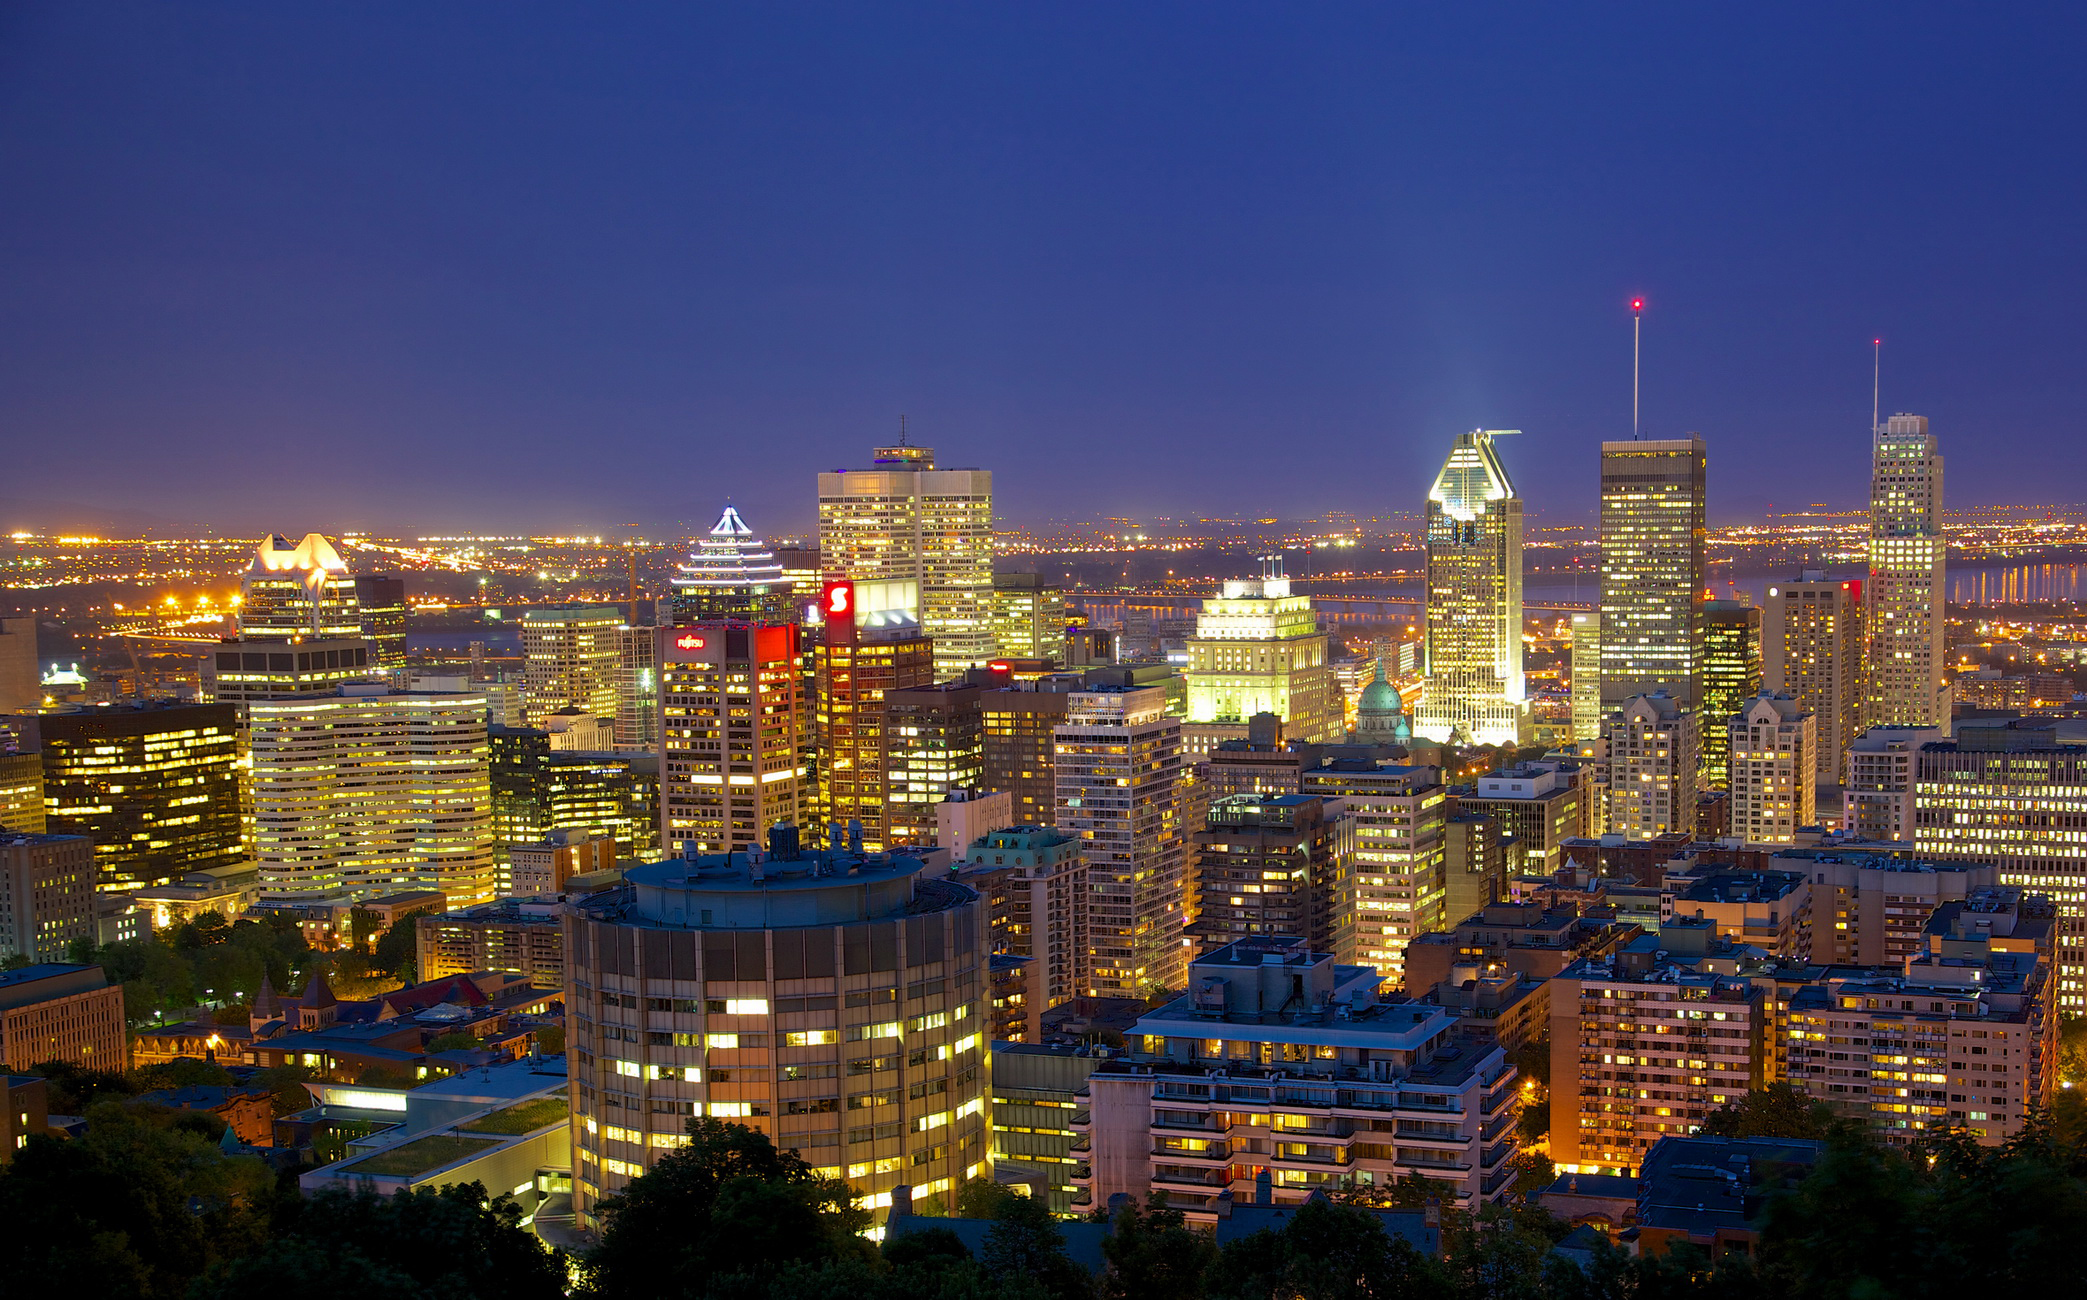 Montreal canada wallpaper 2087x1300 220418 WallpaperUP 2087x1300